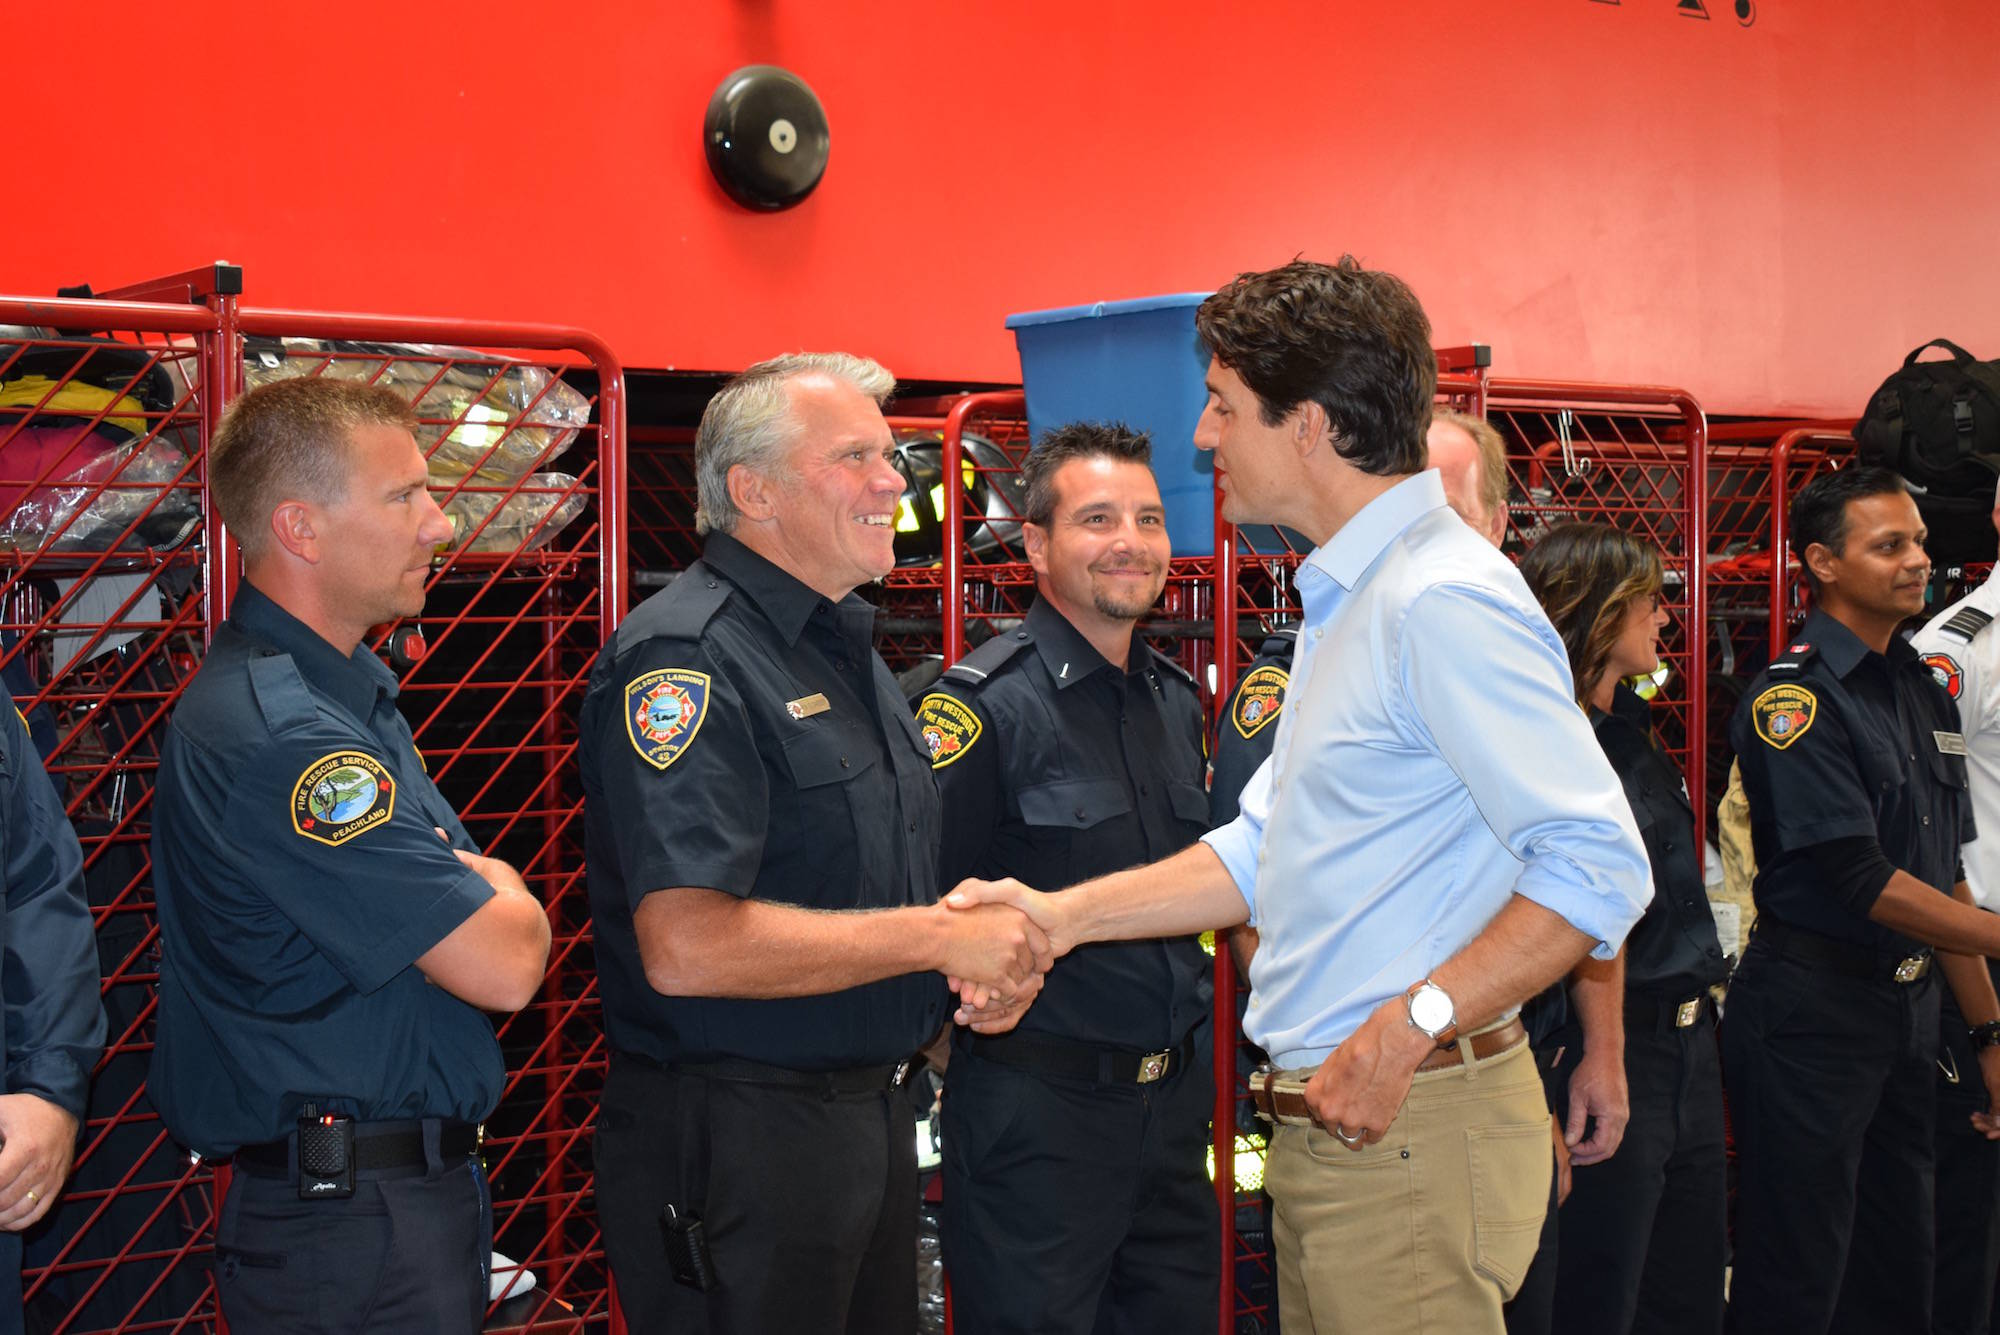 Prime Minister Justin Trudeau met with firefighters in Kelowna on Sept. 5, 2017. Image credit: Al Waters